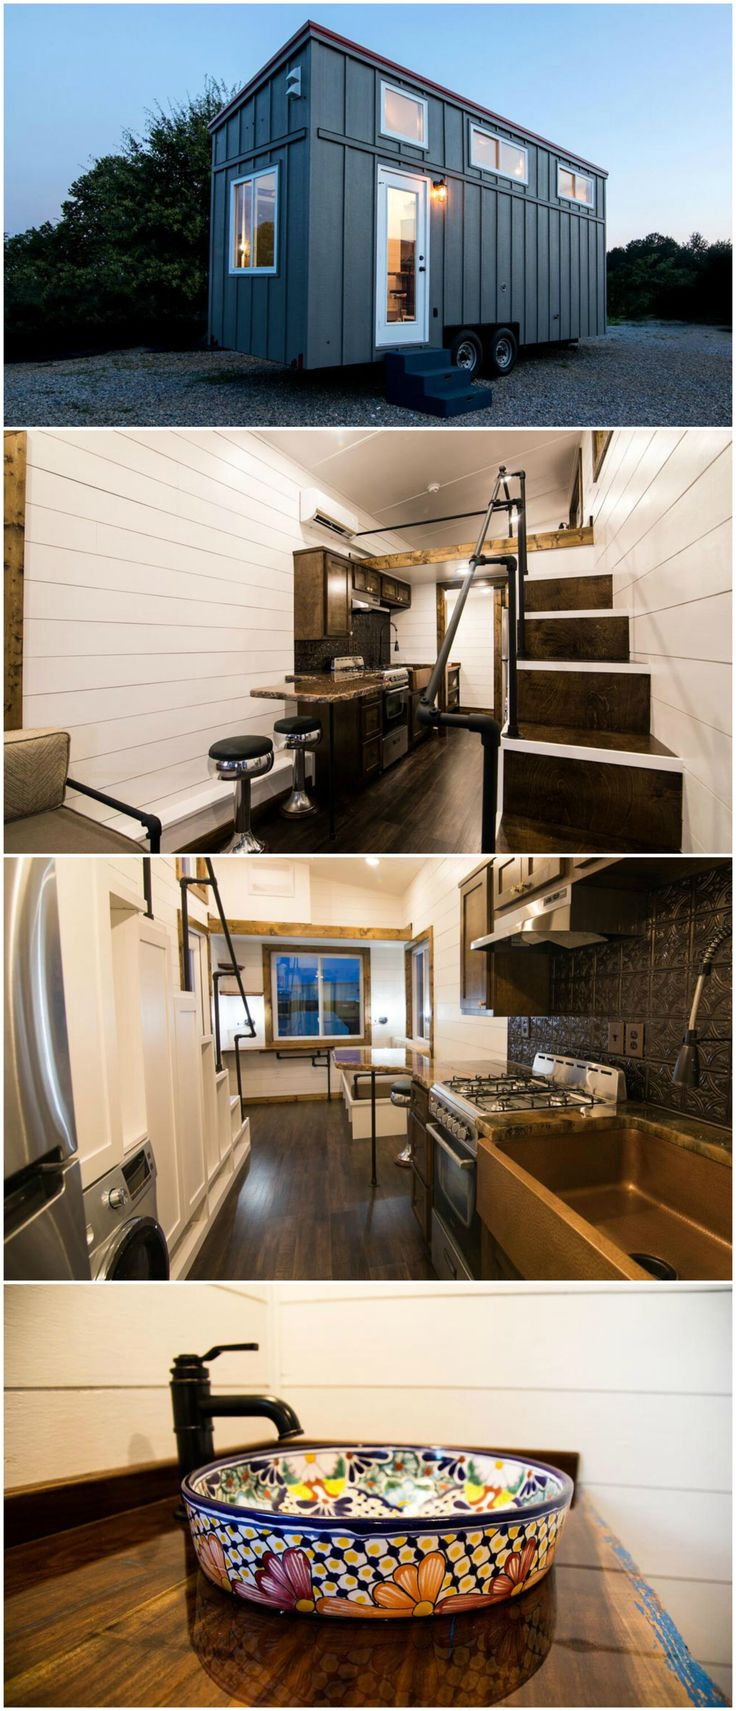 Hyacinth is a nice 24-foot tiny house on wheels with a gorgeous kitchen. The tiny house is designed by Harmony Tiny Homes.  The kitchen features a custom made granite countertop with seating area, two upcycled bar stools, a copper apron sink, and metal backsplash. The kitchen appliances include a four burner gas range with venting hood, stainless steel refrigerator, and a combo washer/dryer. Storage stairs, drawers, and upper cabinets provide plentiful storage options.